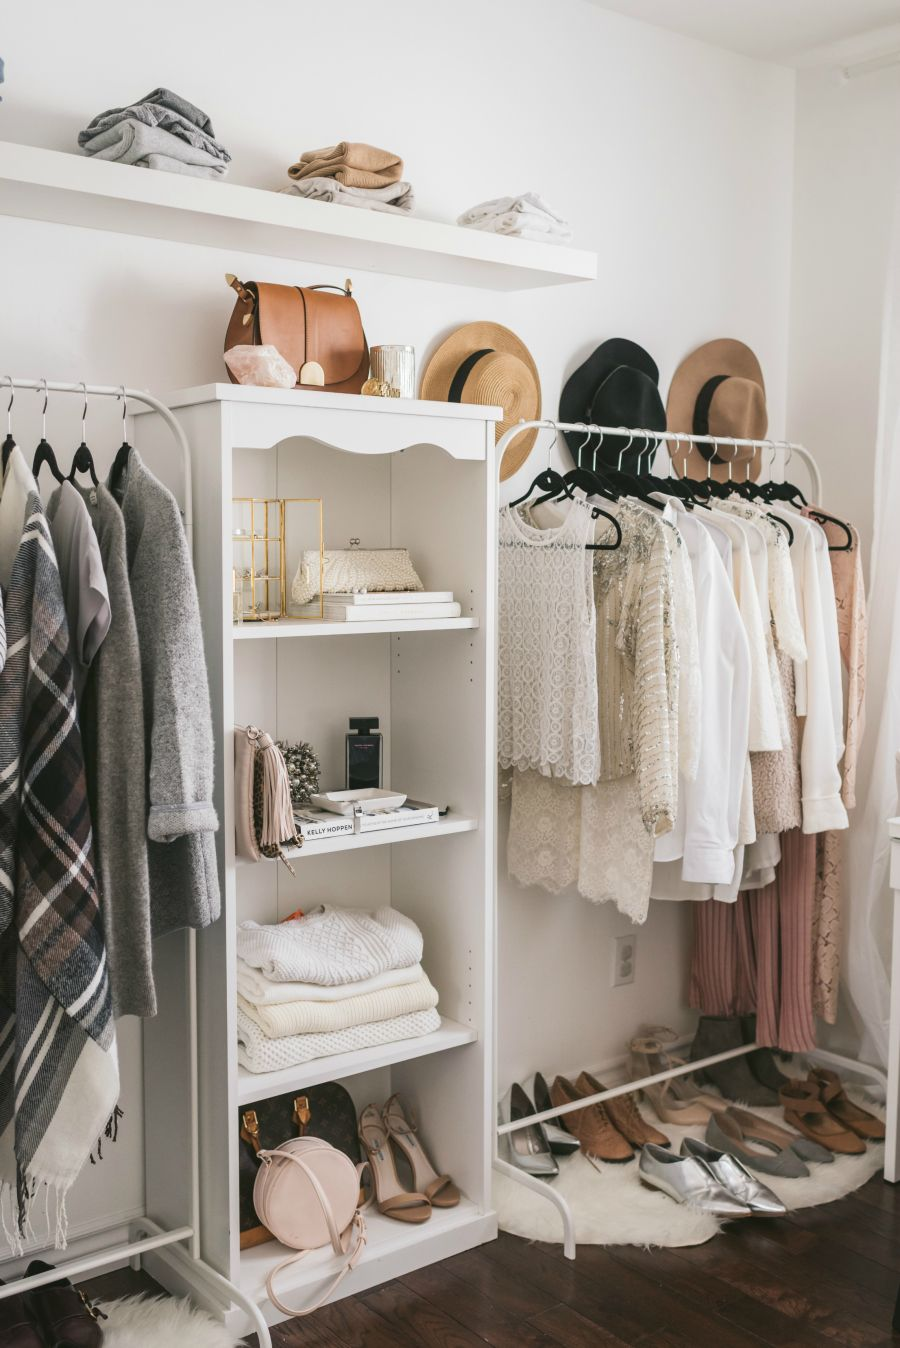 Tallulah + Bellamy Novogratz's 7 Steps to Revamping Your Closet